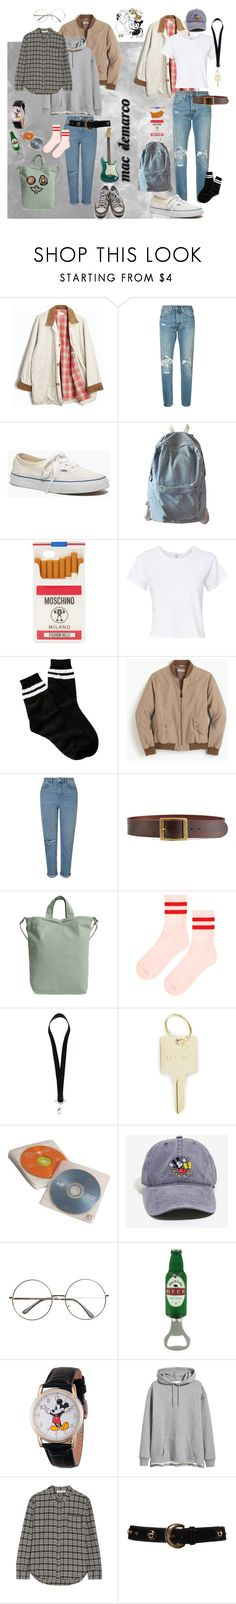 """Mac Demarco"" by sydneybrunette on Polyvore featuring J.Crew, Levi's, Madewell, WithChic, Moschino, RE/DONE, Free Press, Miss Selfridge, Converse and Frame"